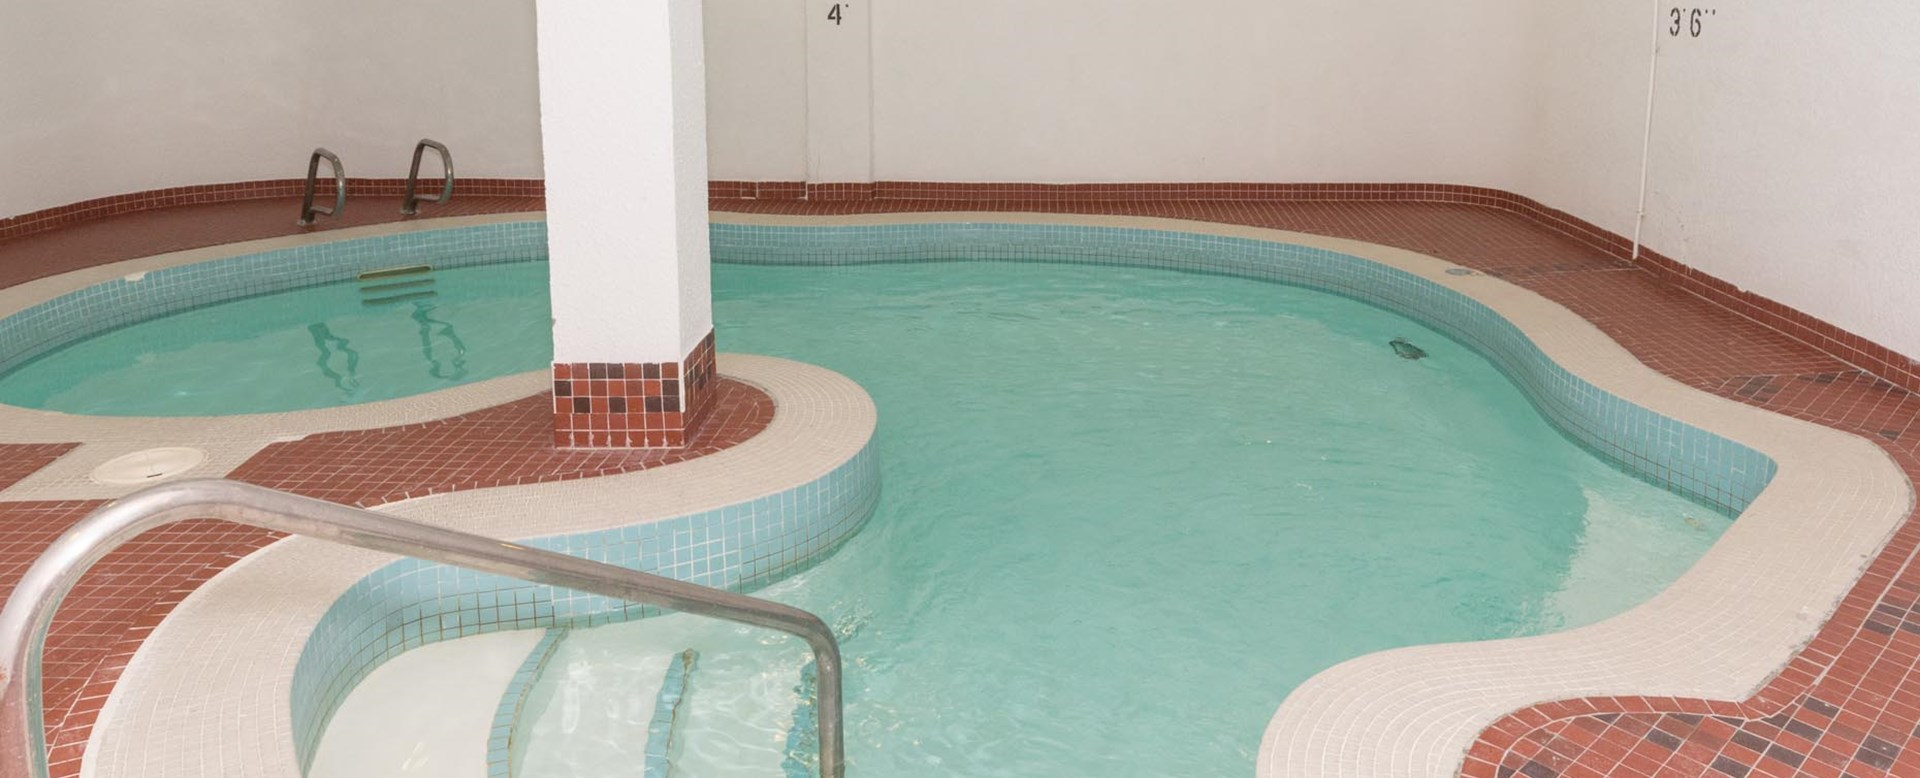 Pool at Solano House in Edmonton